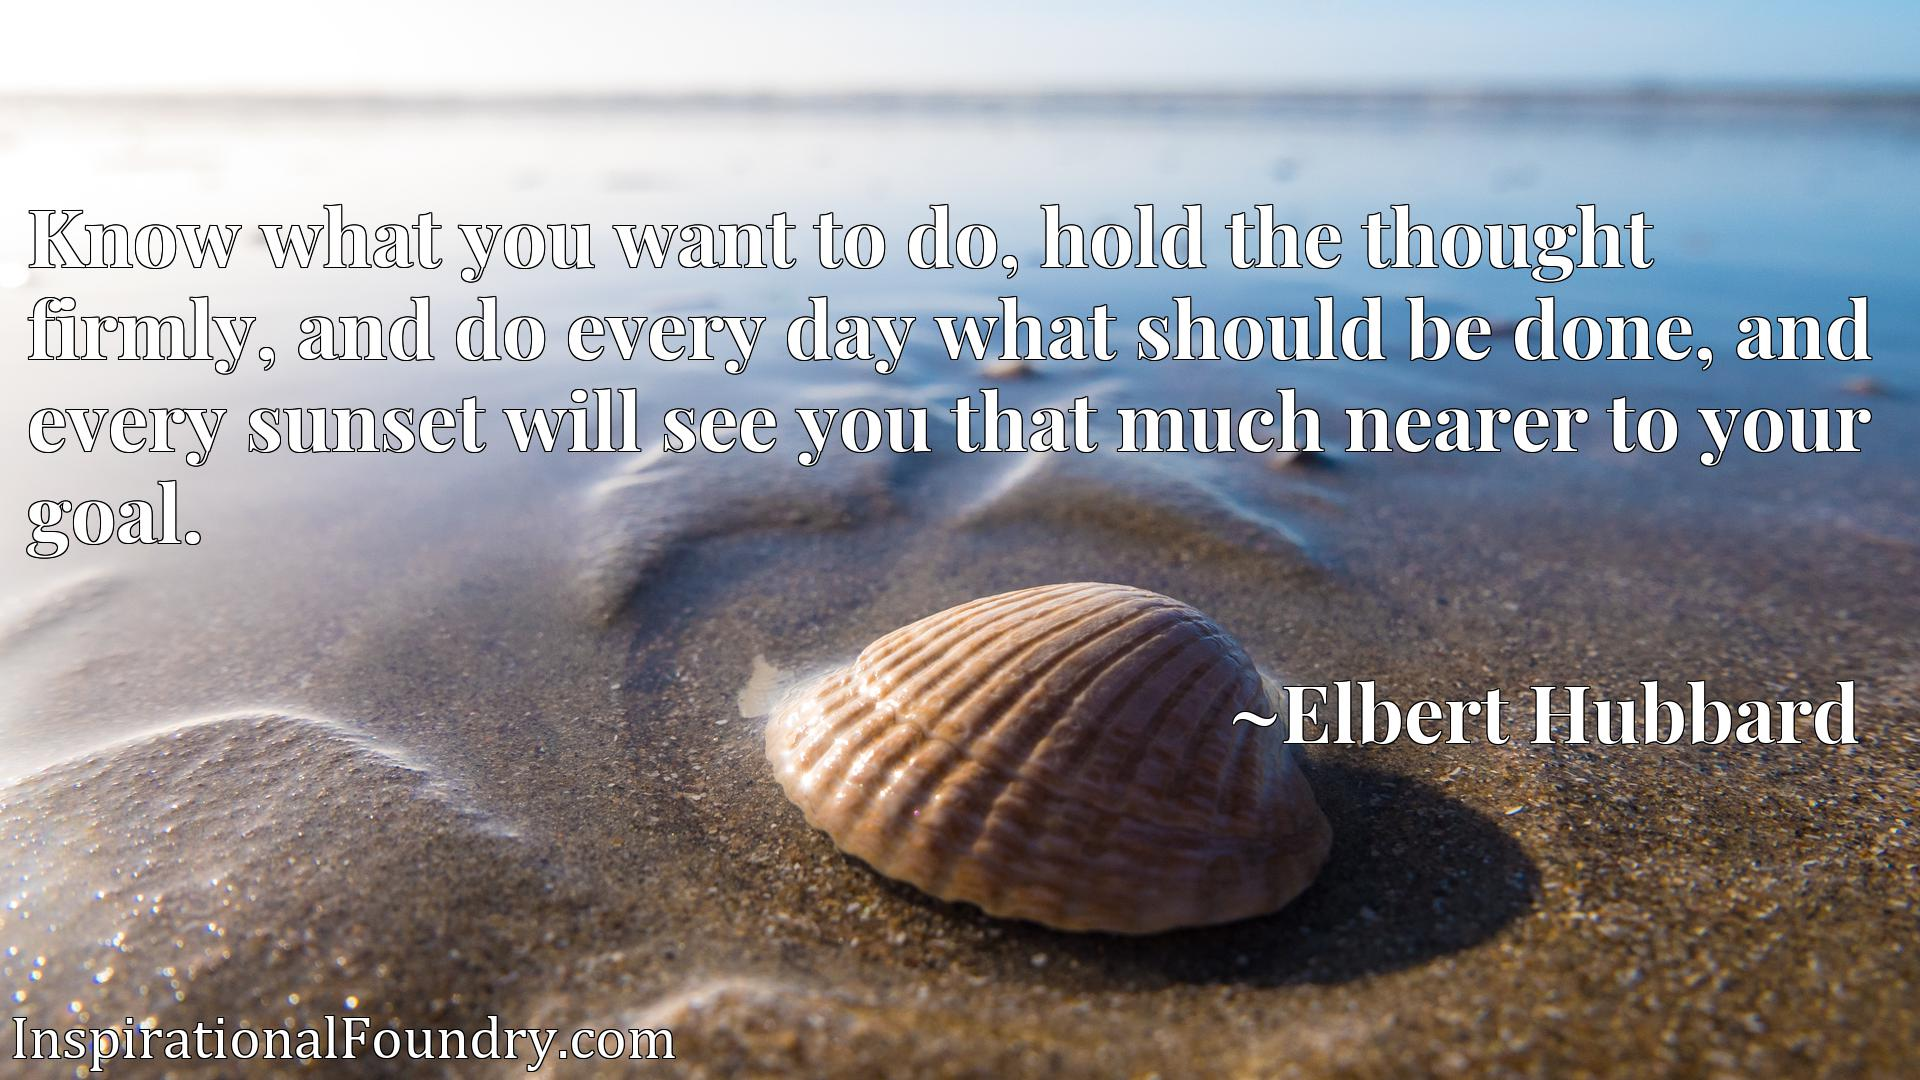 Quote Picture :Know what you want to do, hold the thought firmly, and do every day what should be done, and every sunset will see you that much nearer to your goal.